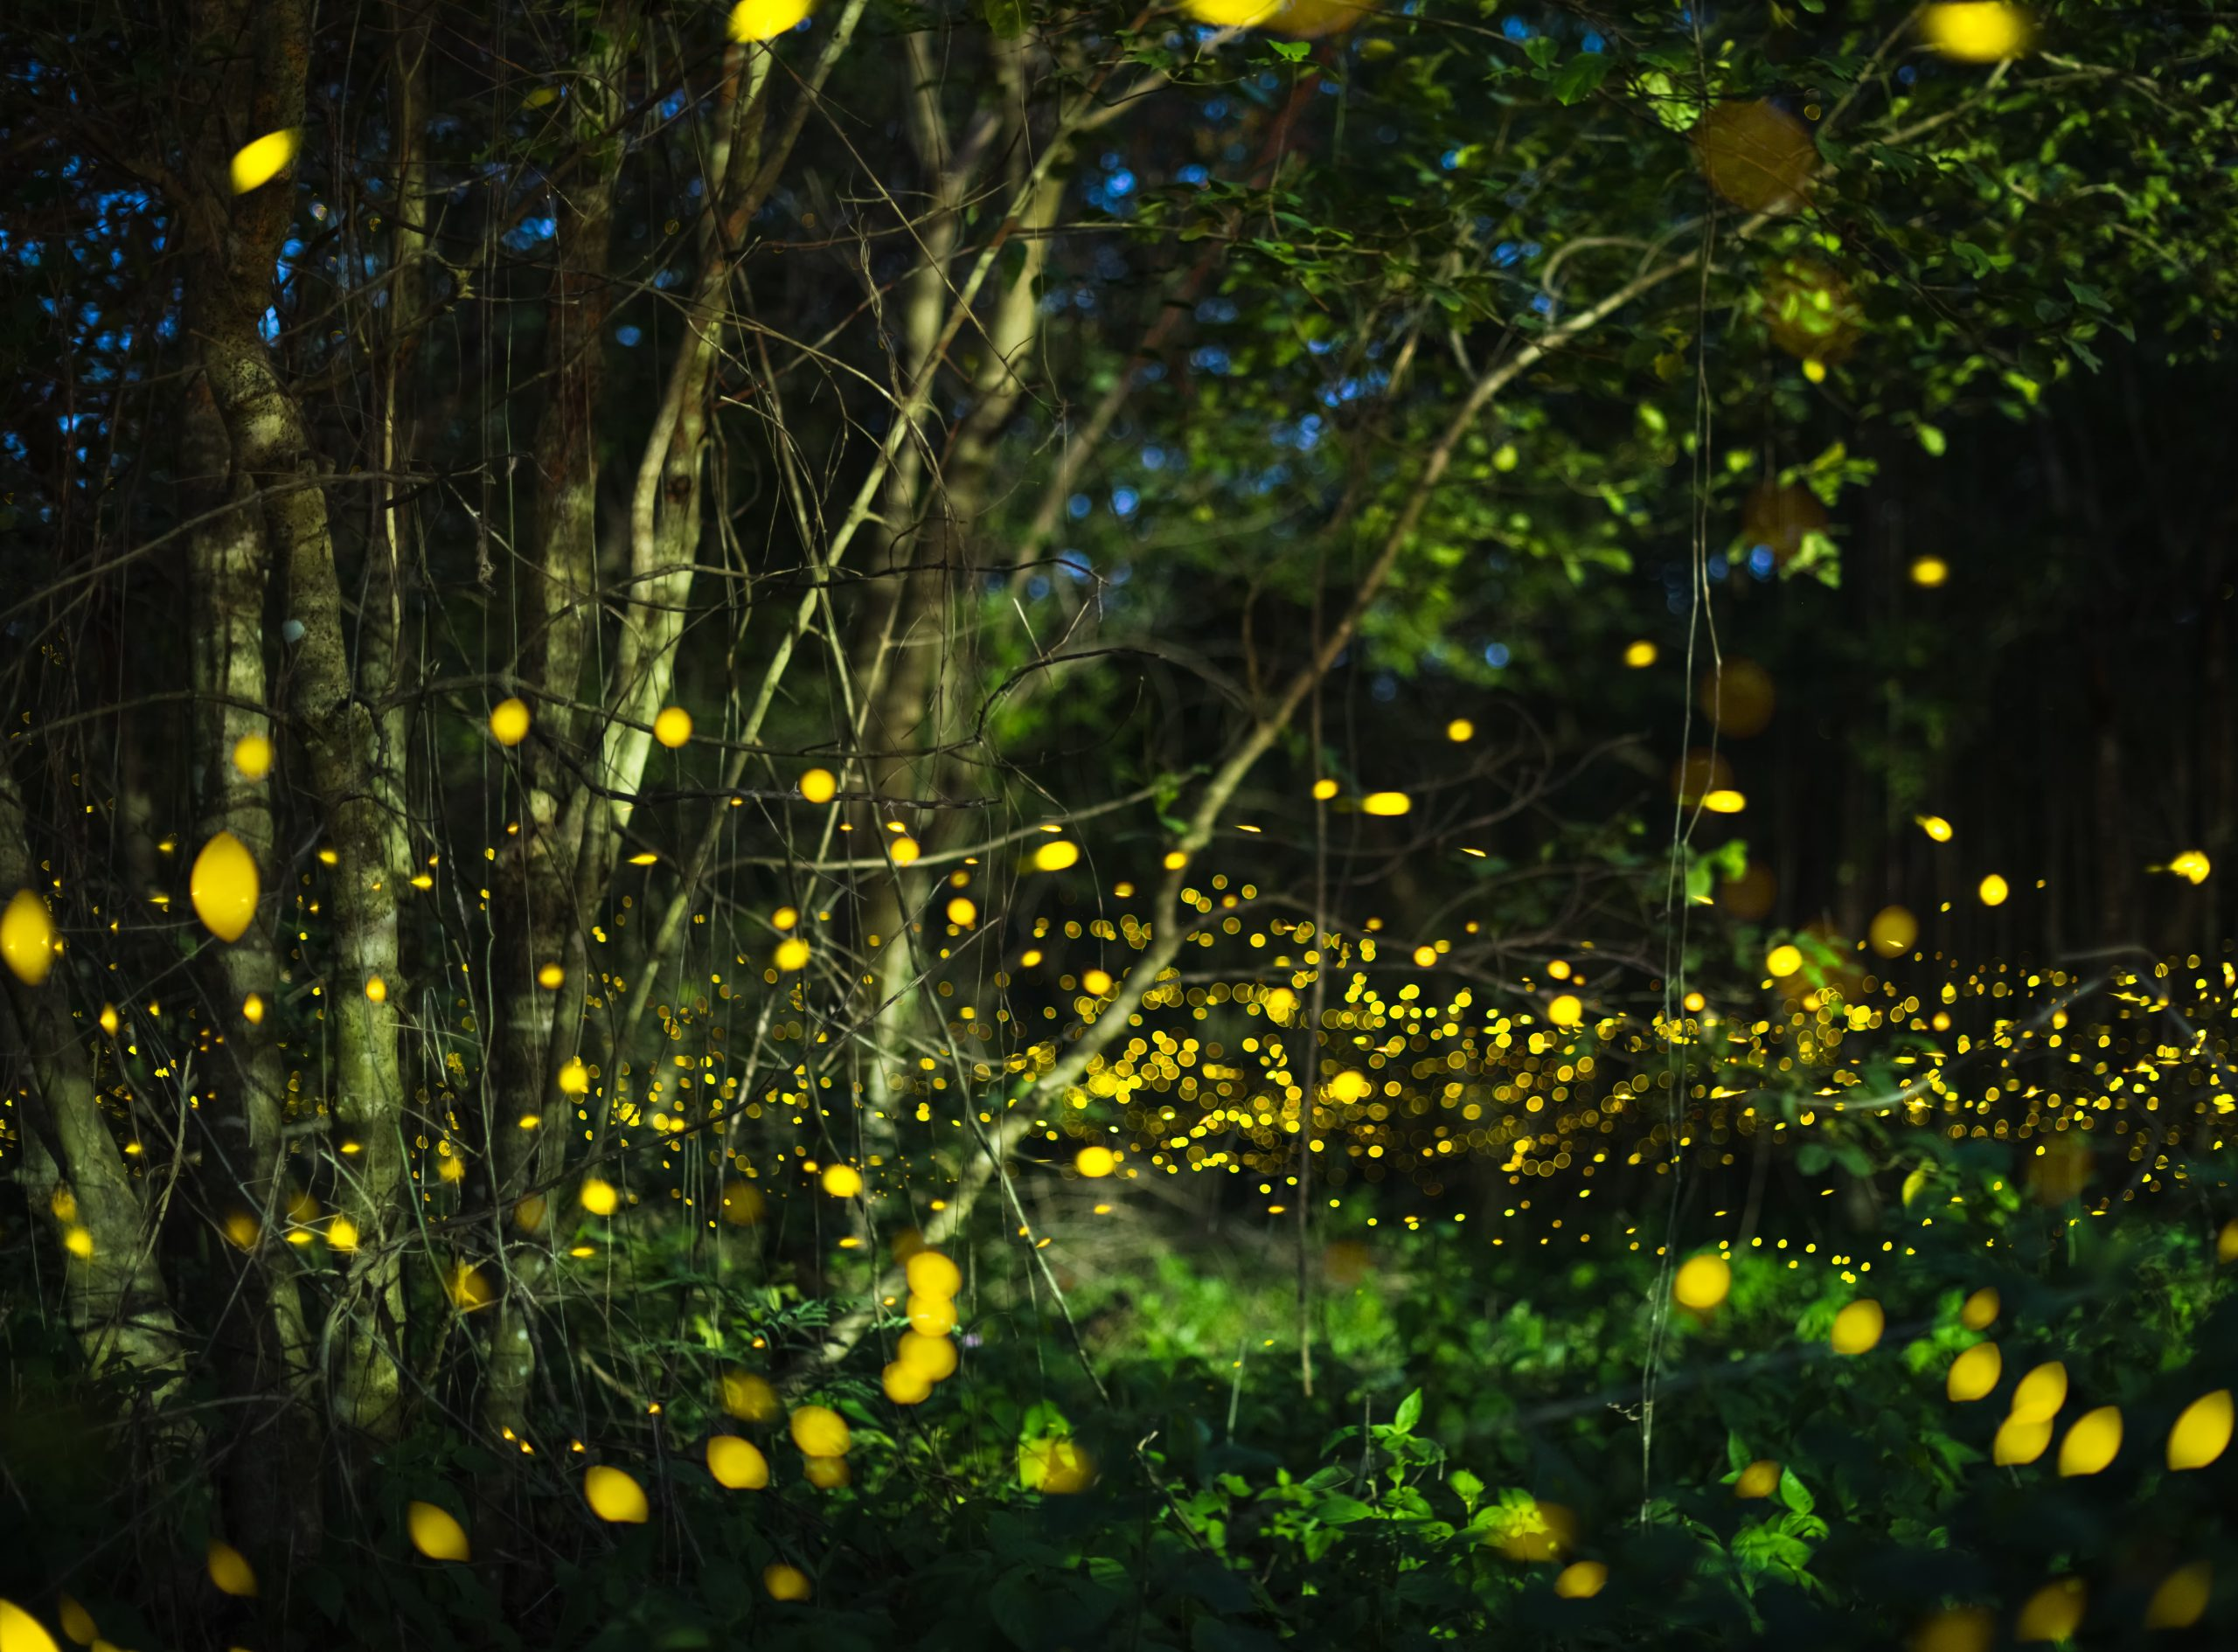 Fireflies use social cues to synchronize their lights • Earth.com - Earth.com